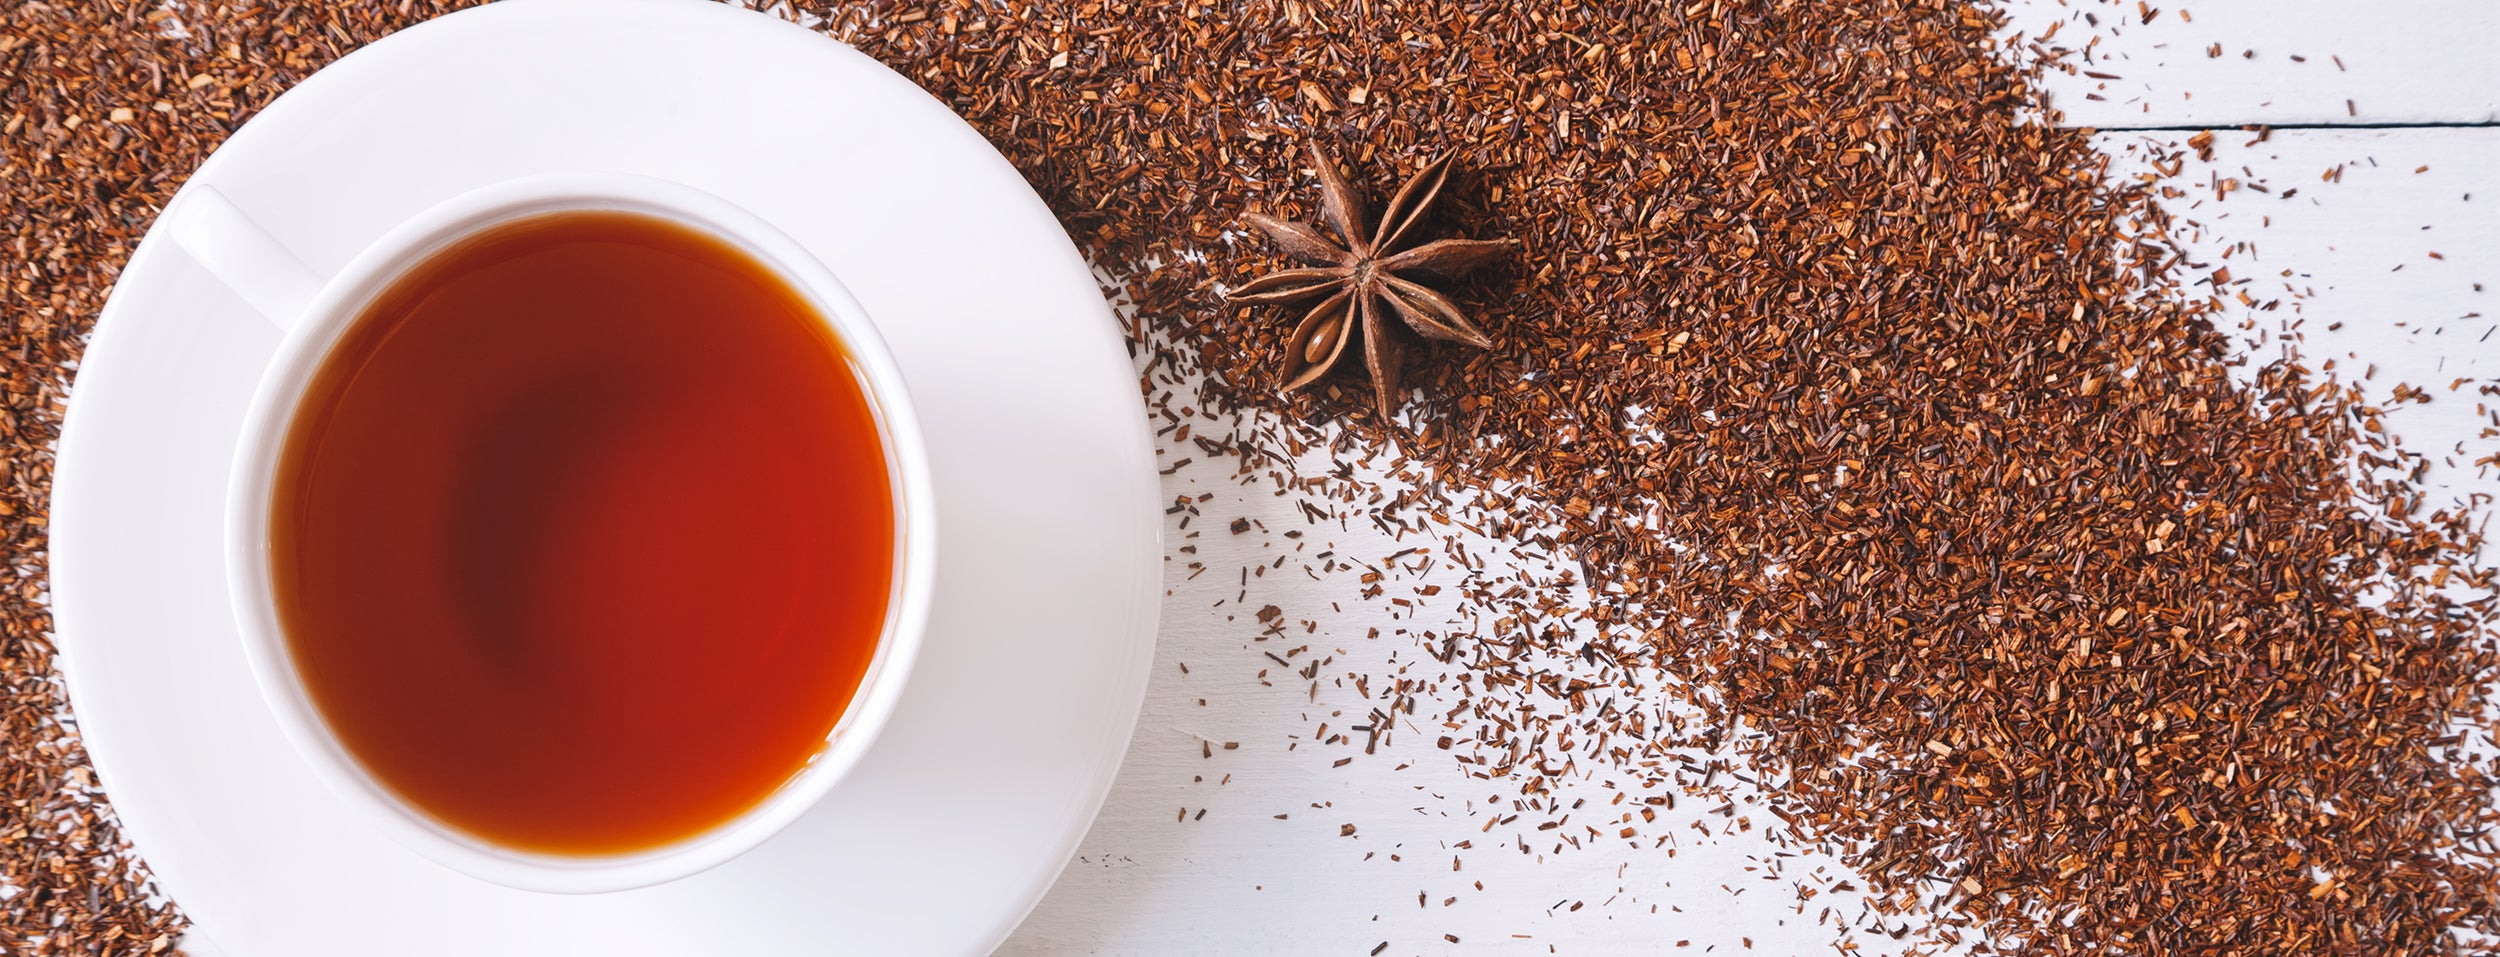 Uptown Tea Shop - Premium Teas and Accessories - Rooibos Tea Collection